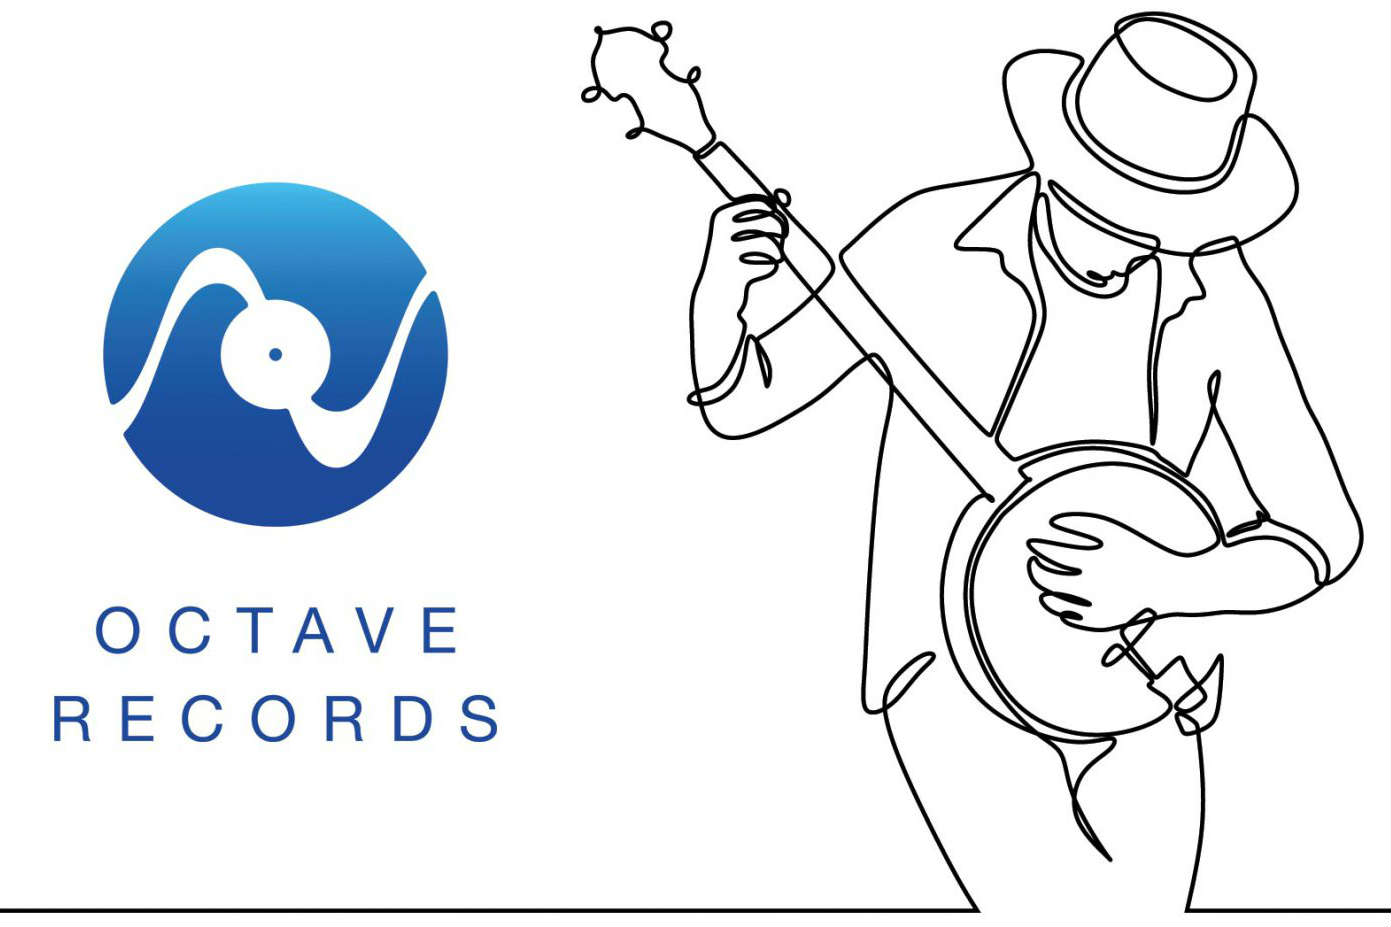 Octave Records™